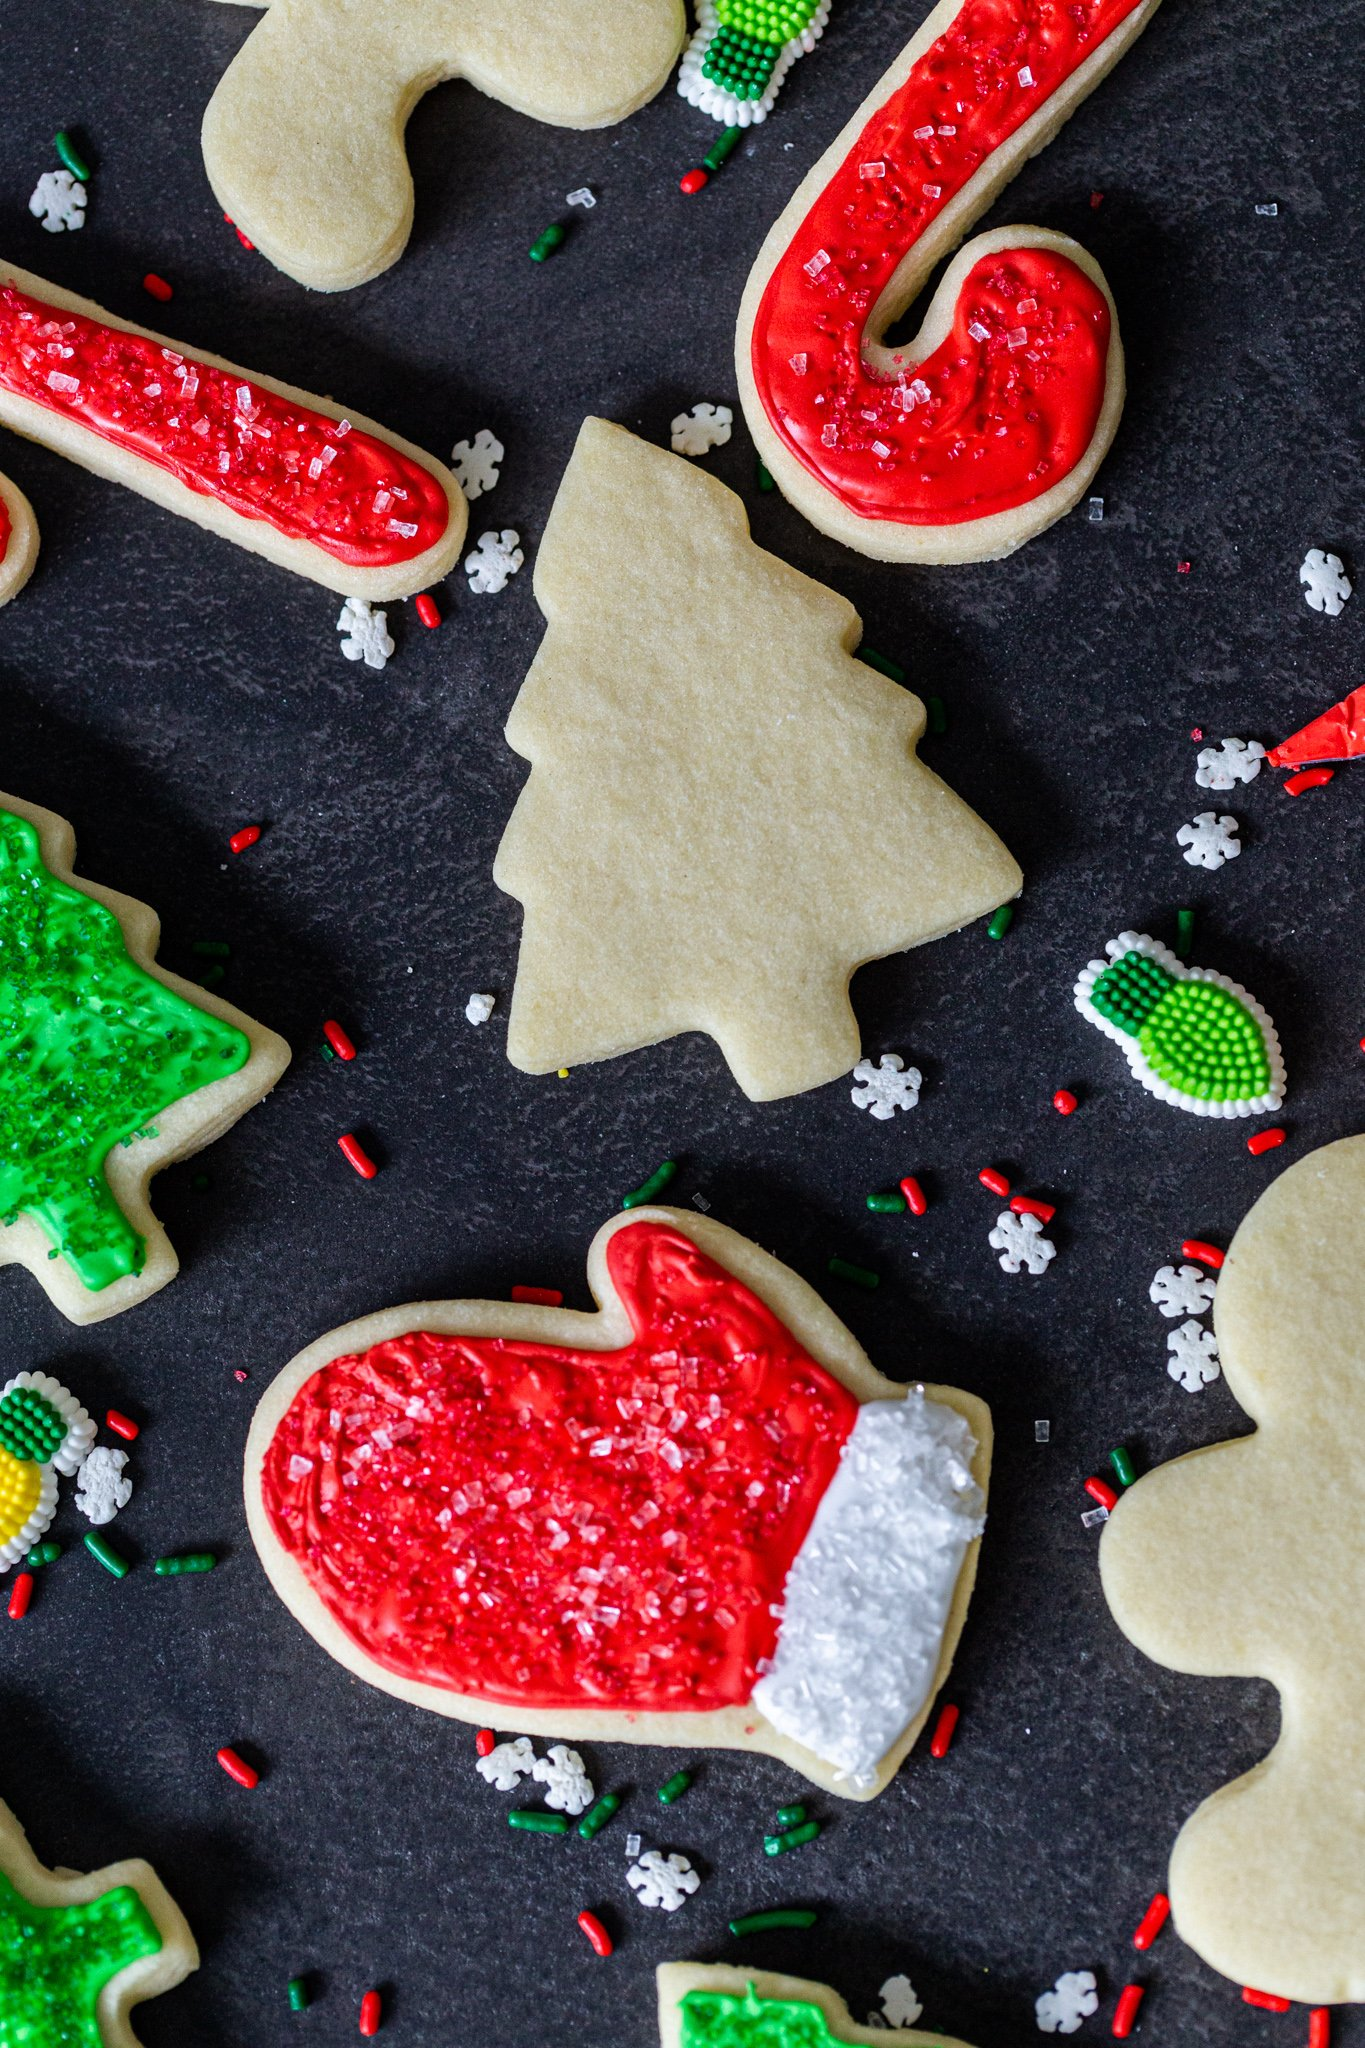 Sugar cookies with Christmas decorations